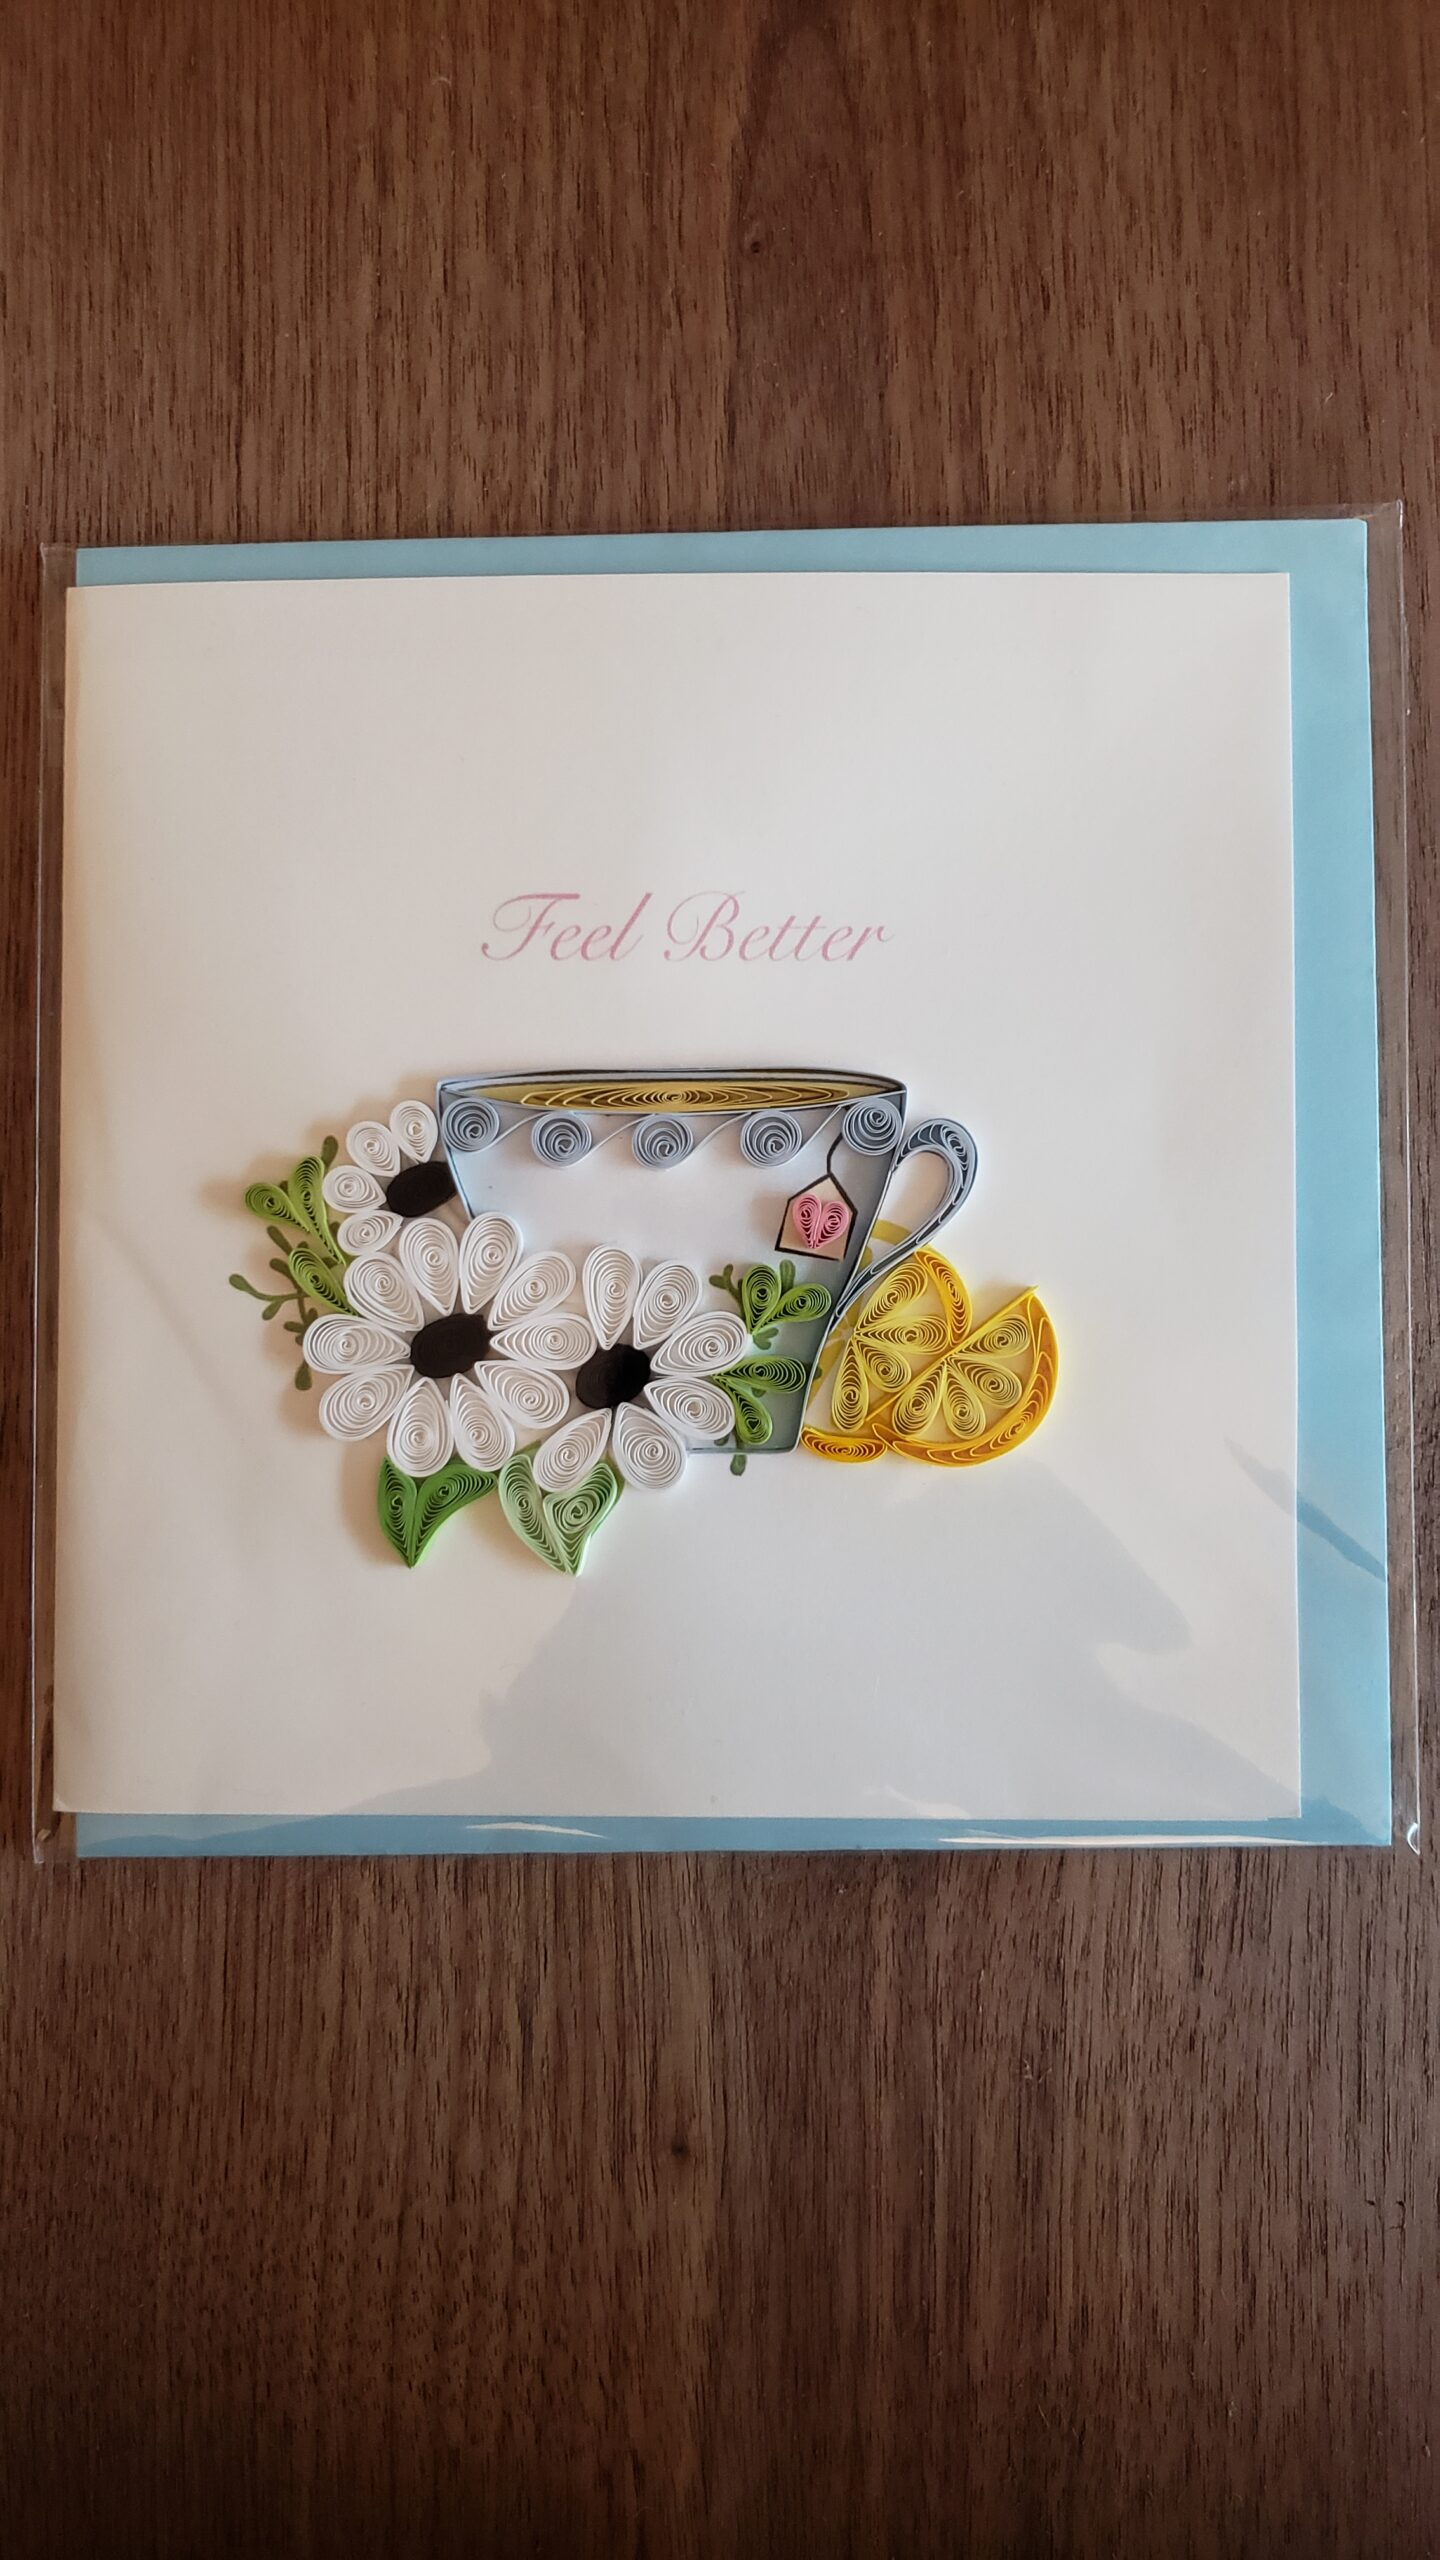 Feel Better Card 6 in. x 6 in.